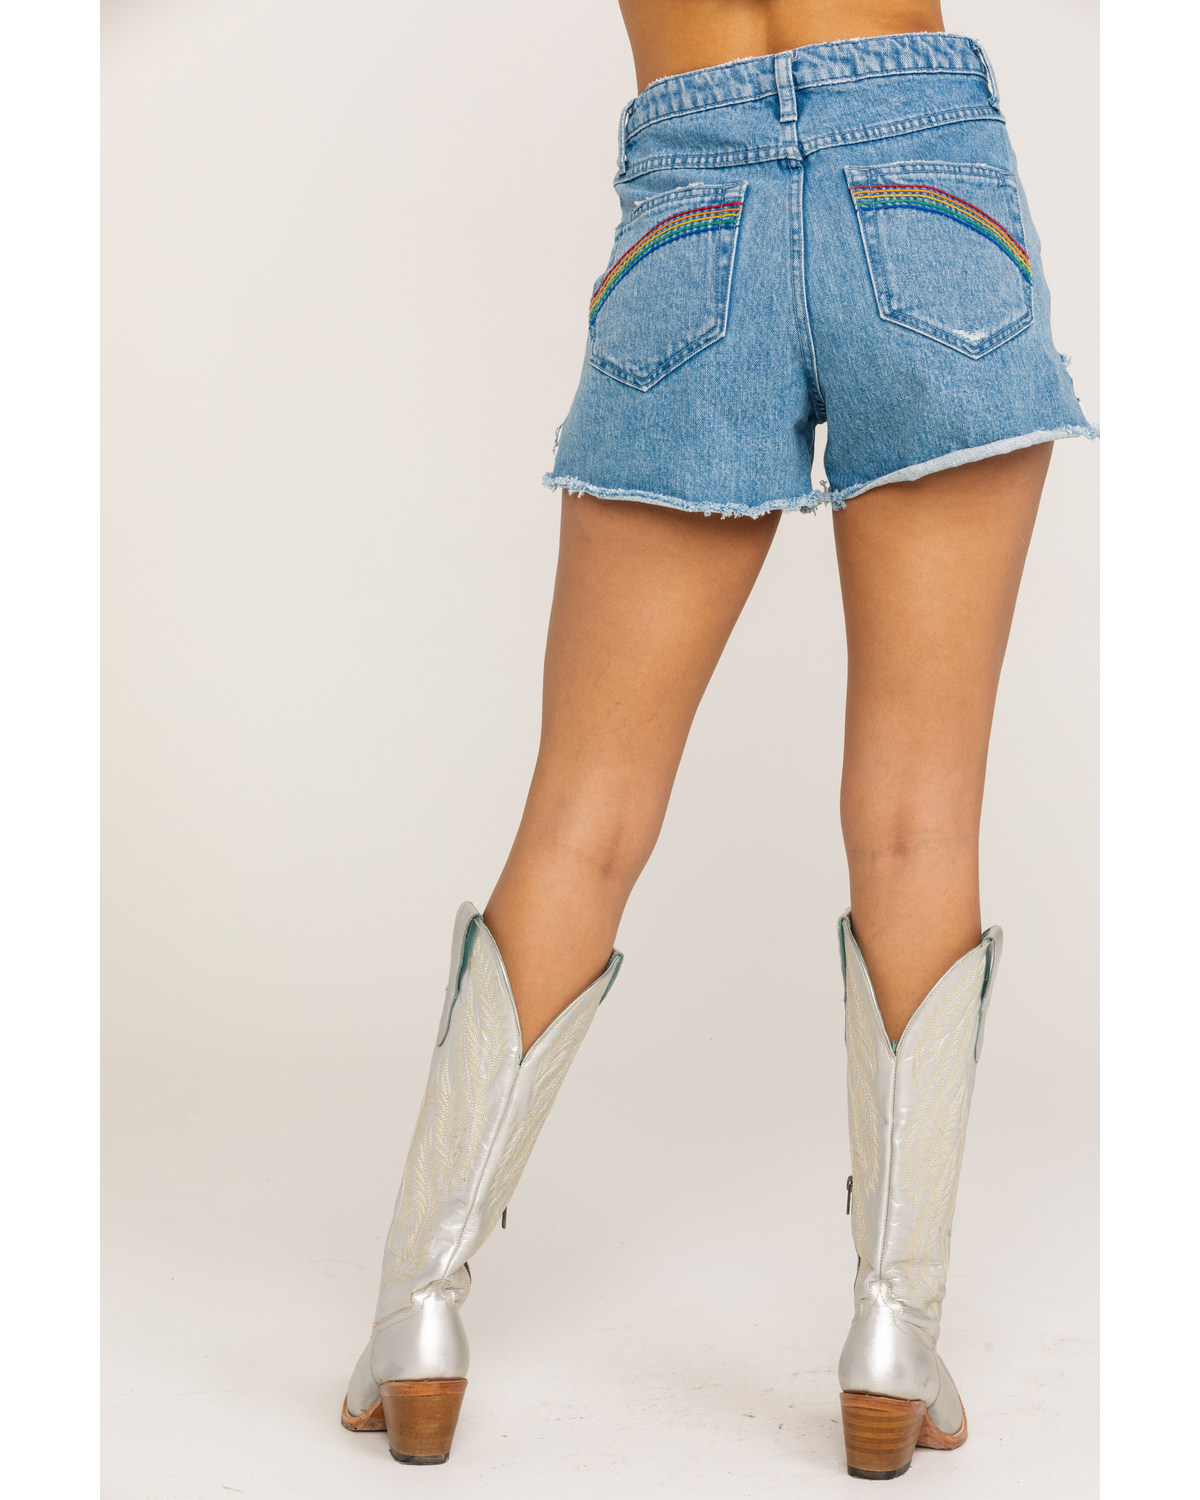 stores to get high waisted shorts